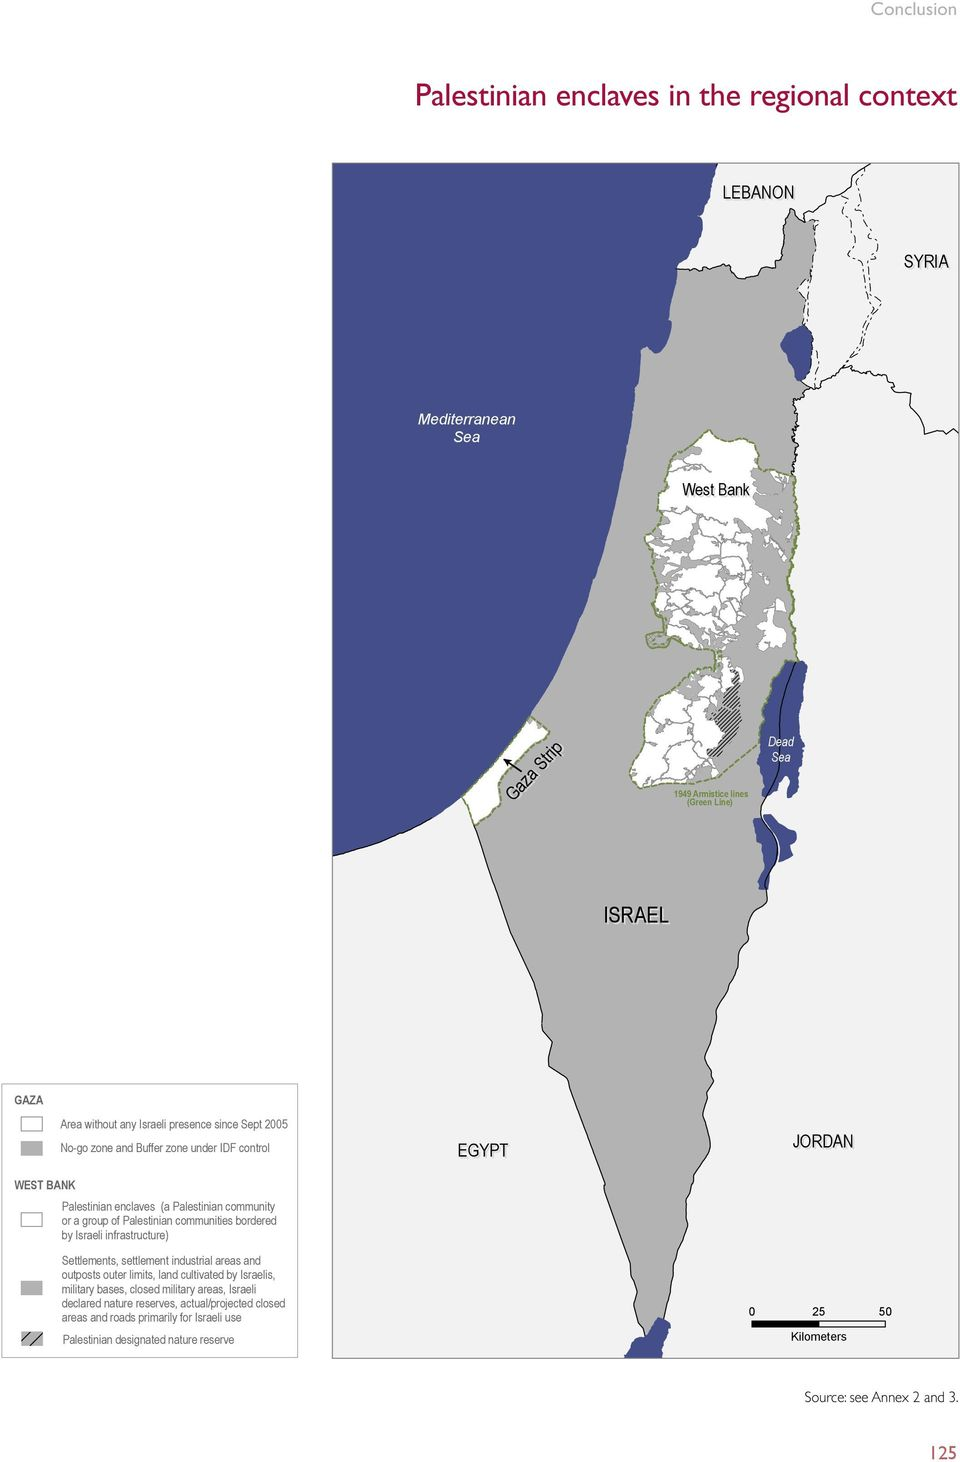 infrastructure) Settlements, settlement industrial areas and outposts outer limits, land cultivated by Israelis, military bases, closed military areas, Israeli declared nature